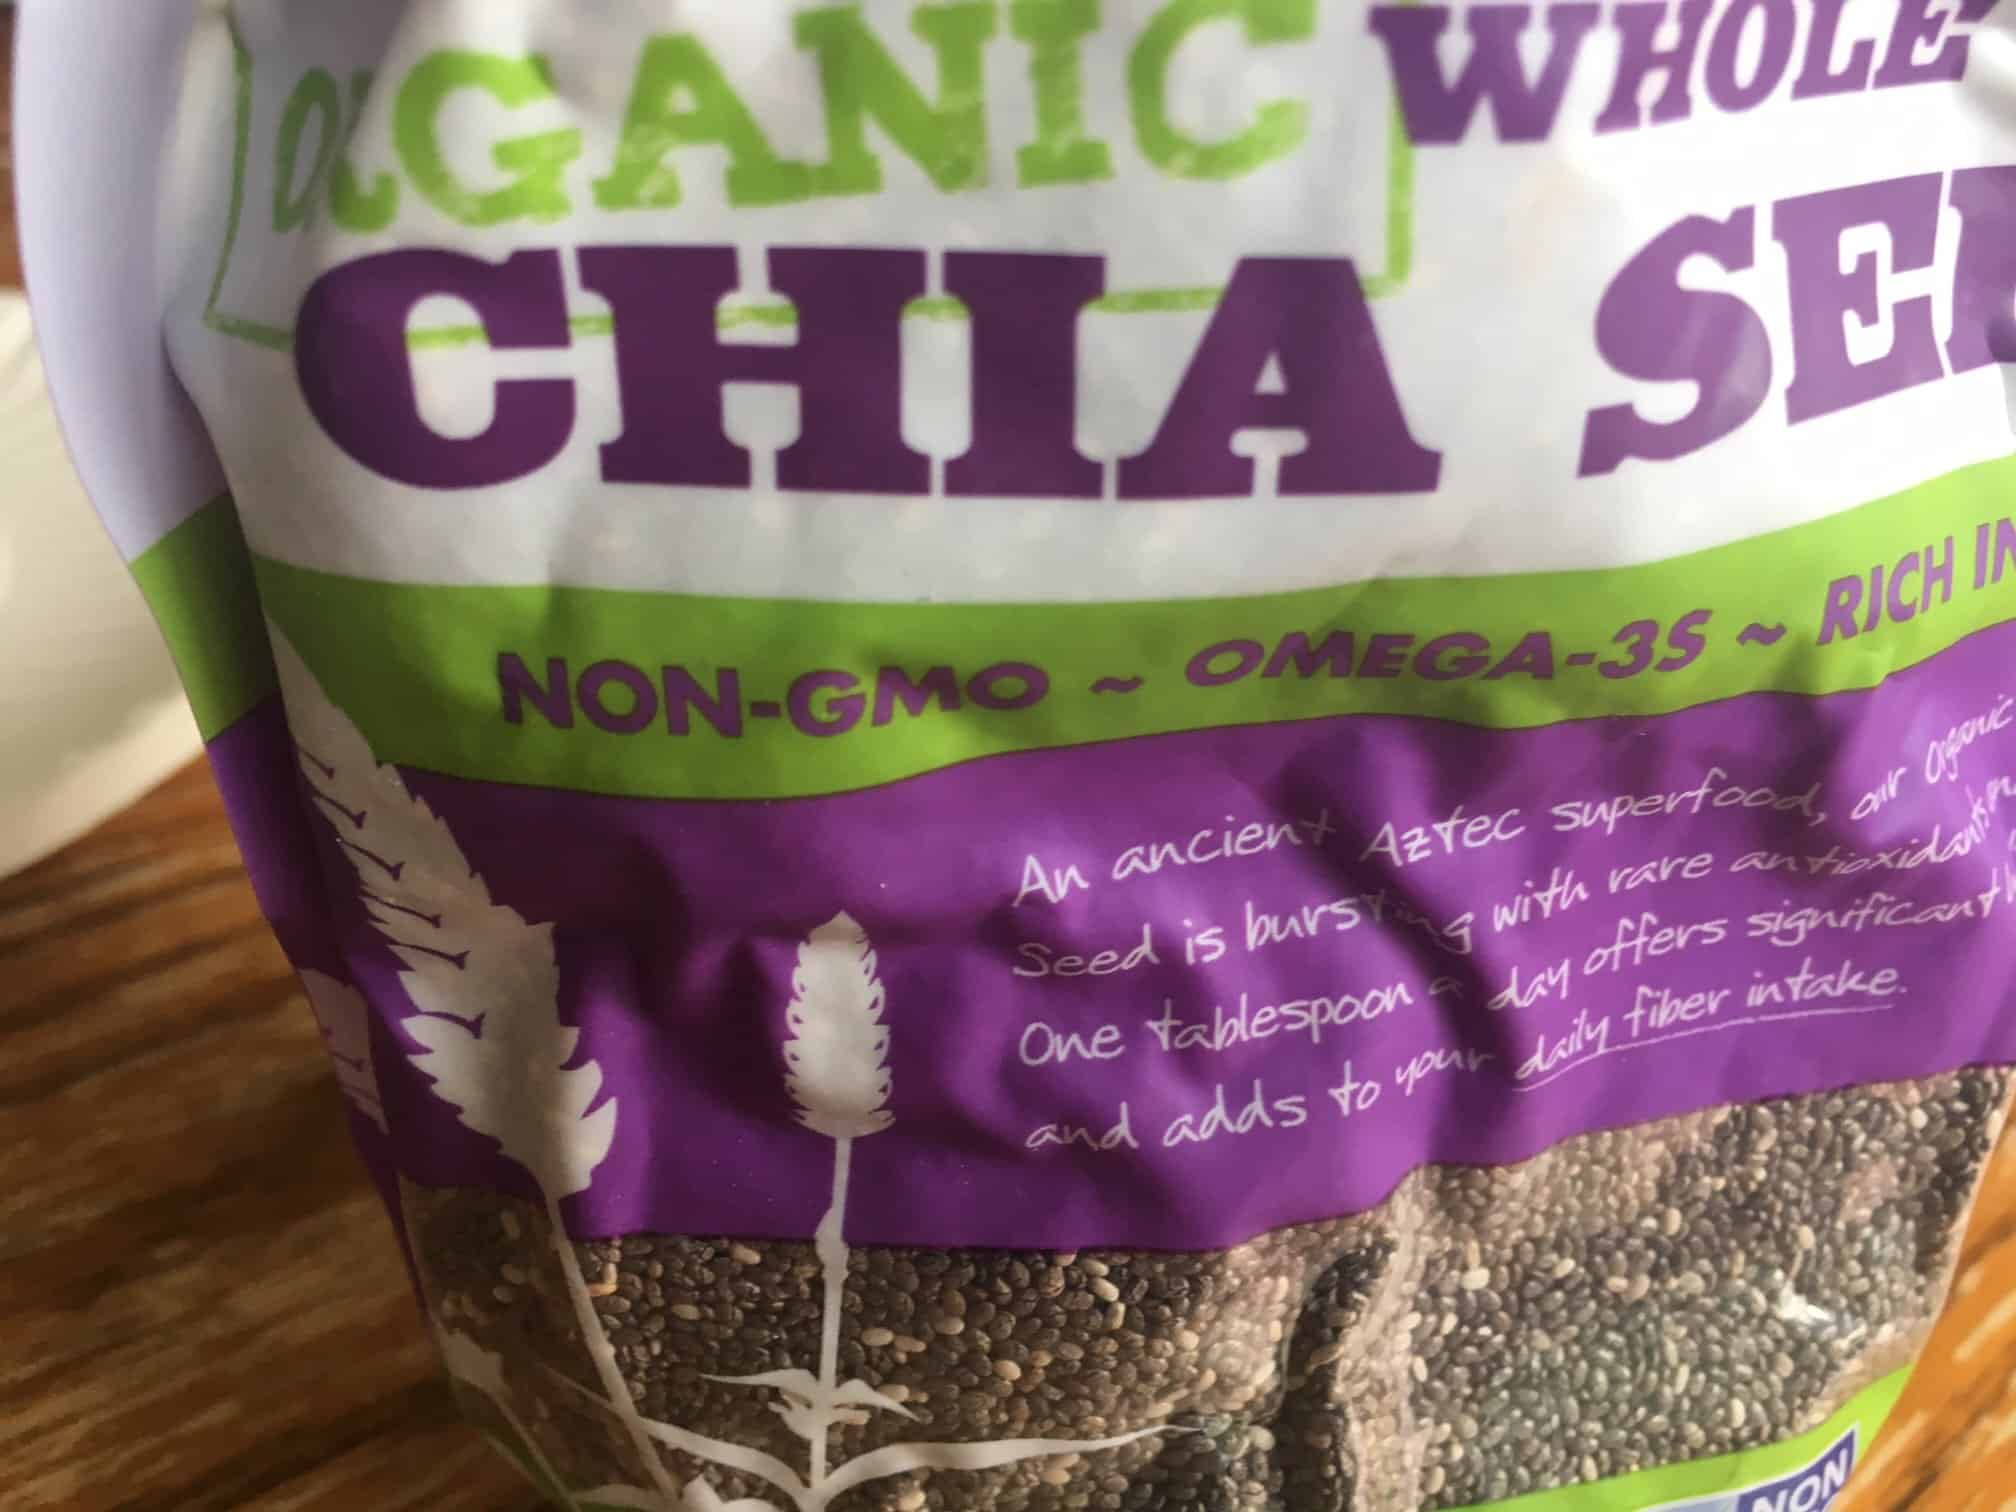 Add chia seeds to food - eating healthy tips